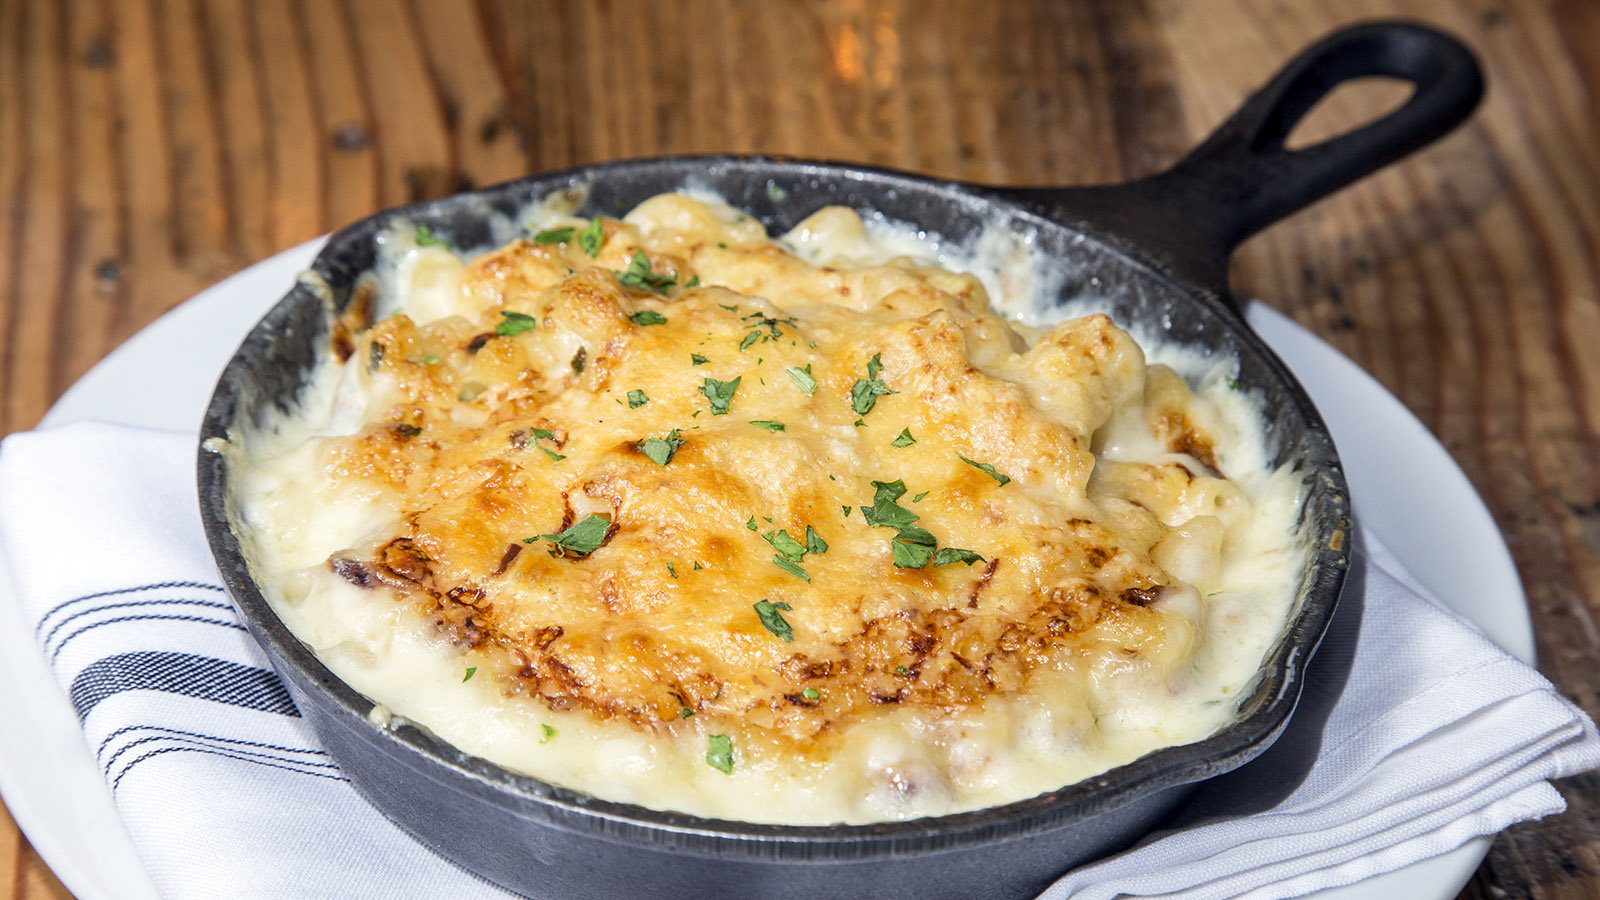 Who Created the First Macaroni and Cheese?